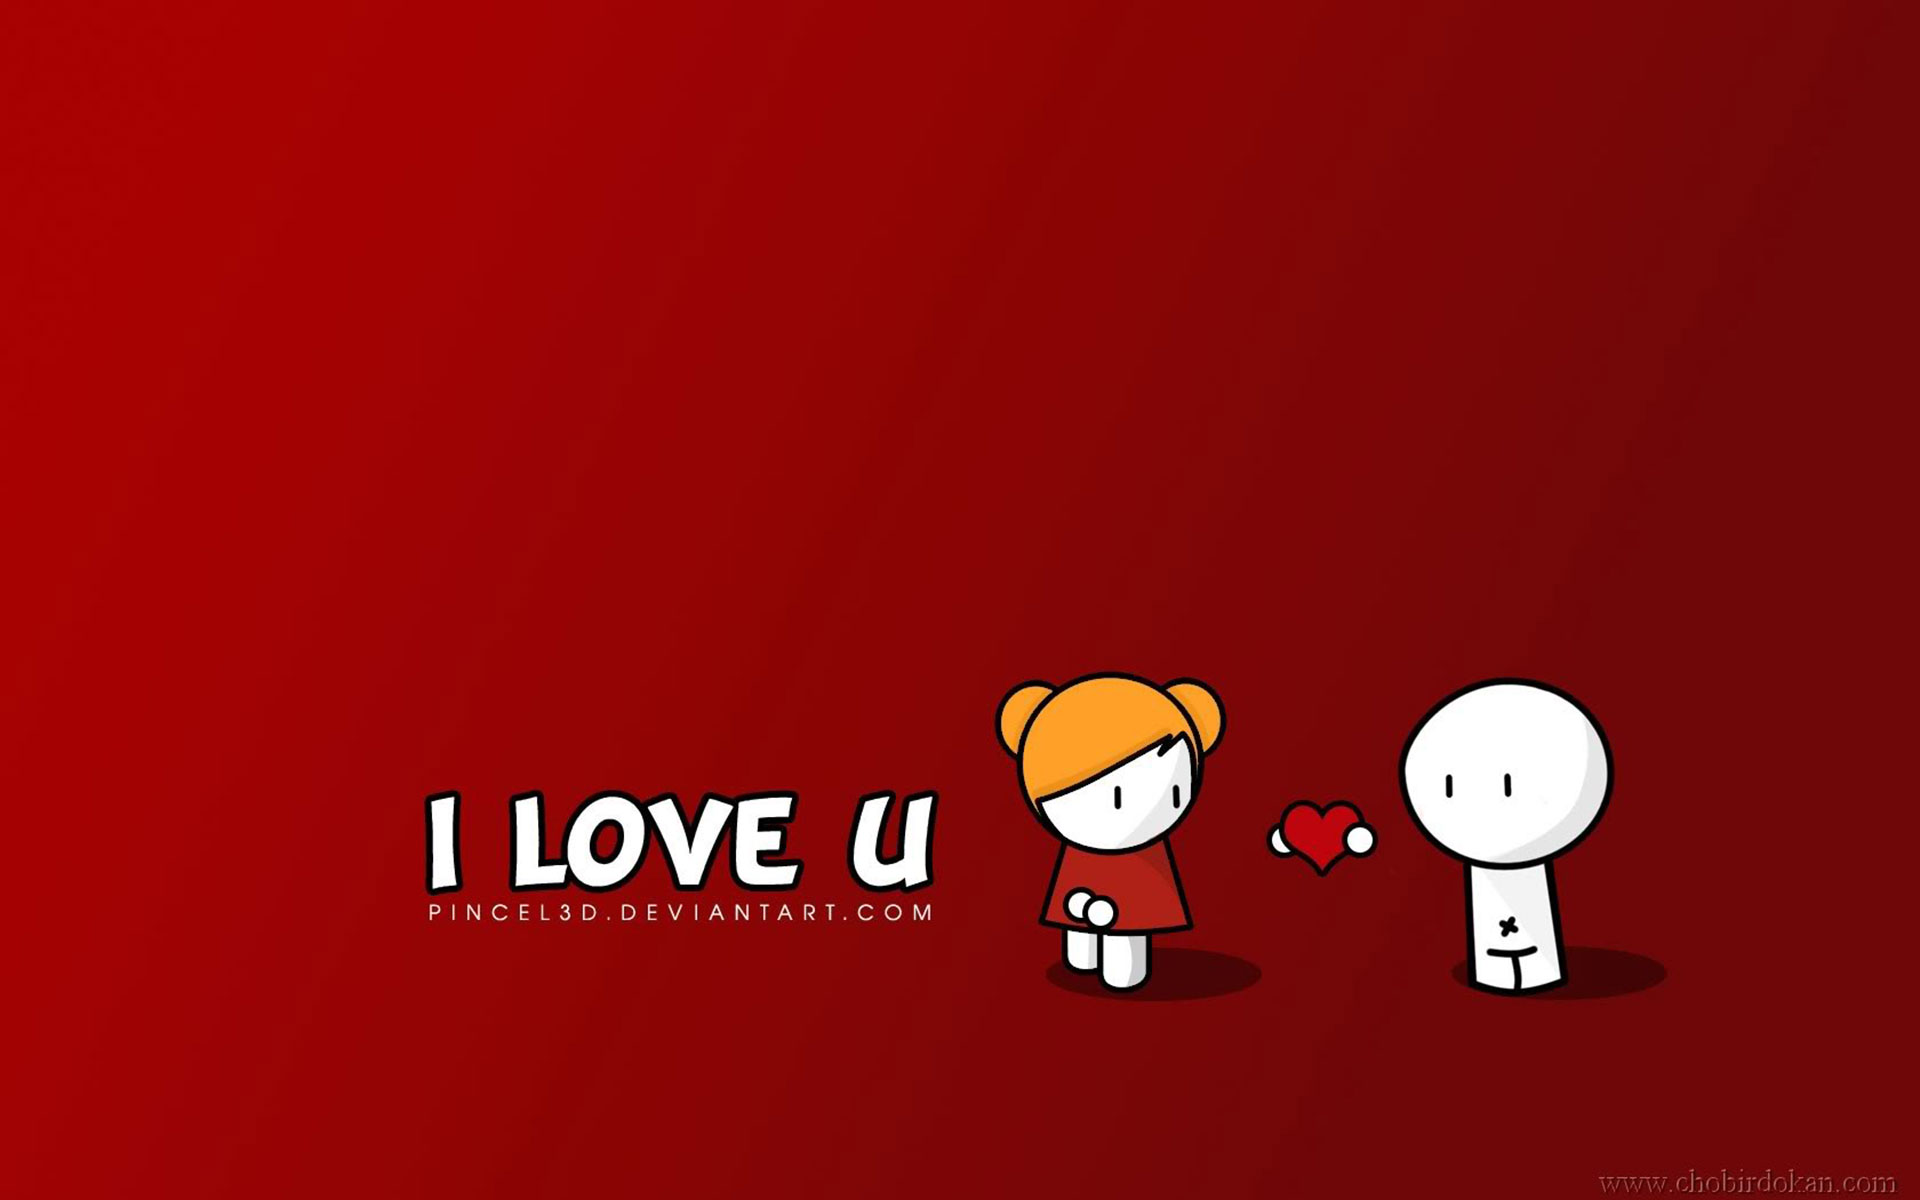 I Love You Wallpaper For Fb : 25+ Free HD I Love You Wallpapers cute I Love You Images